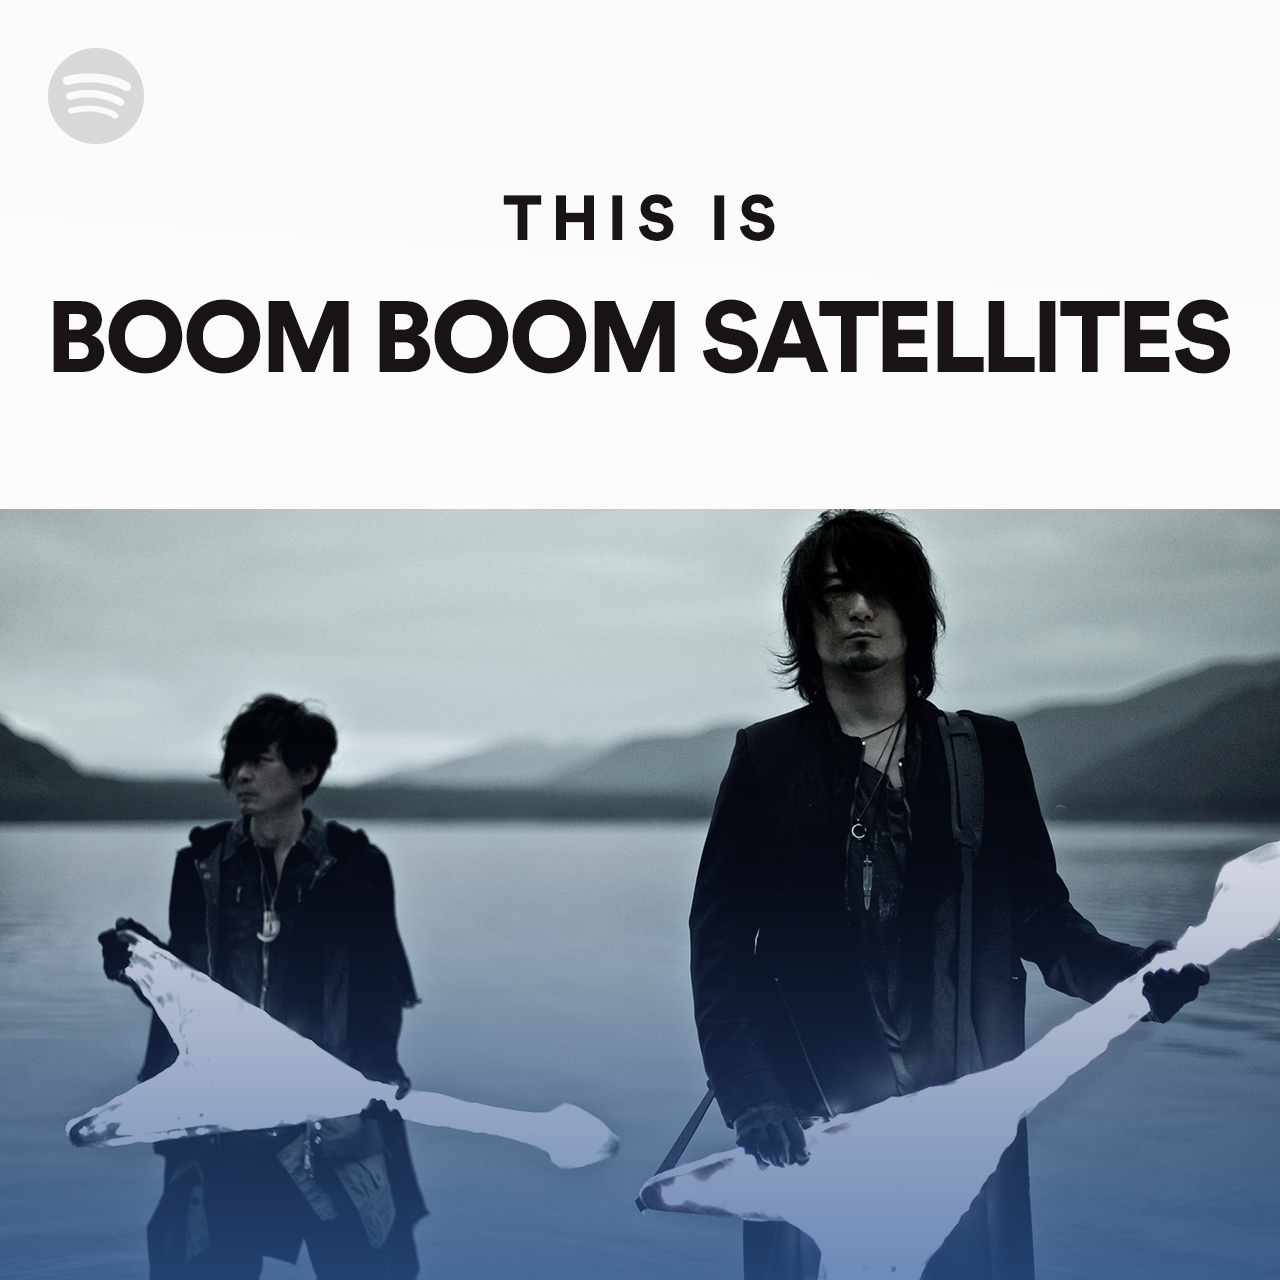 This Is BOOM BOOM SATELLITESのサムネイル